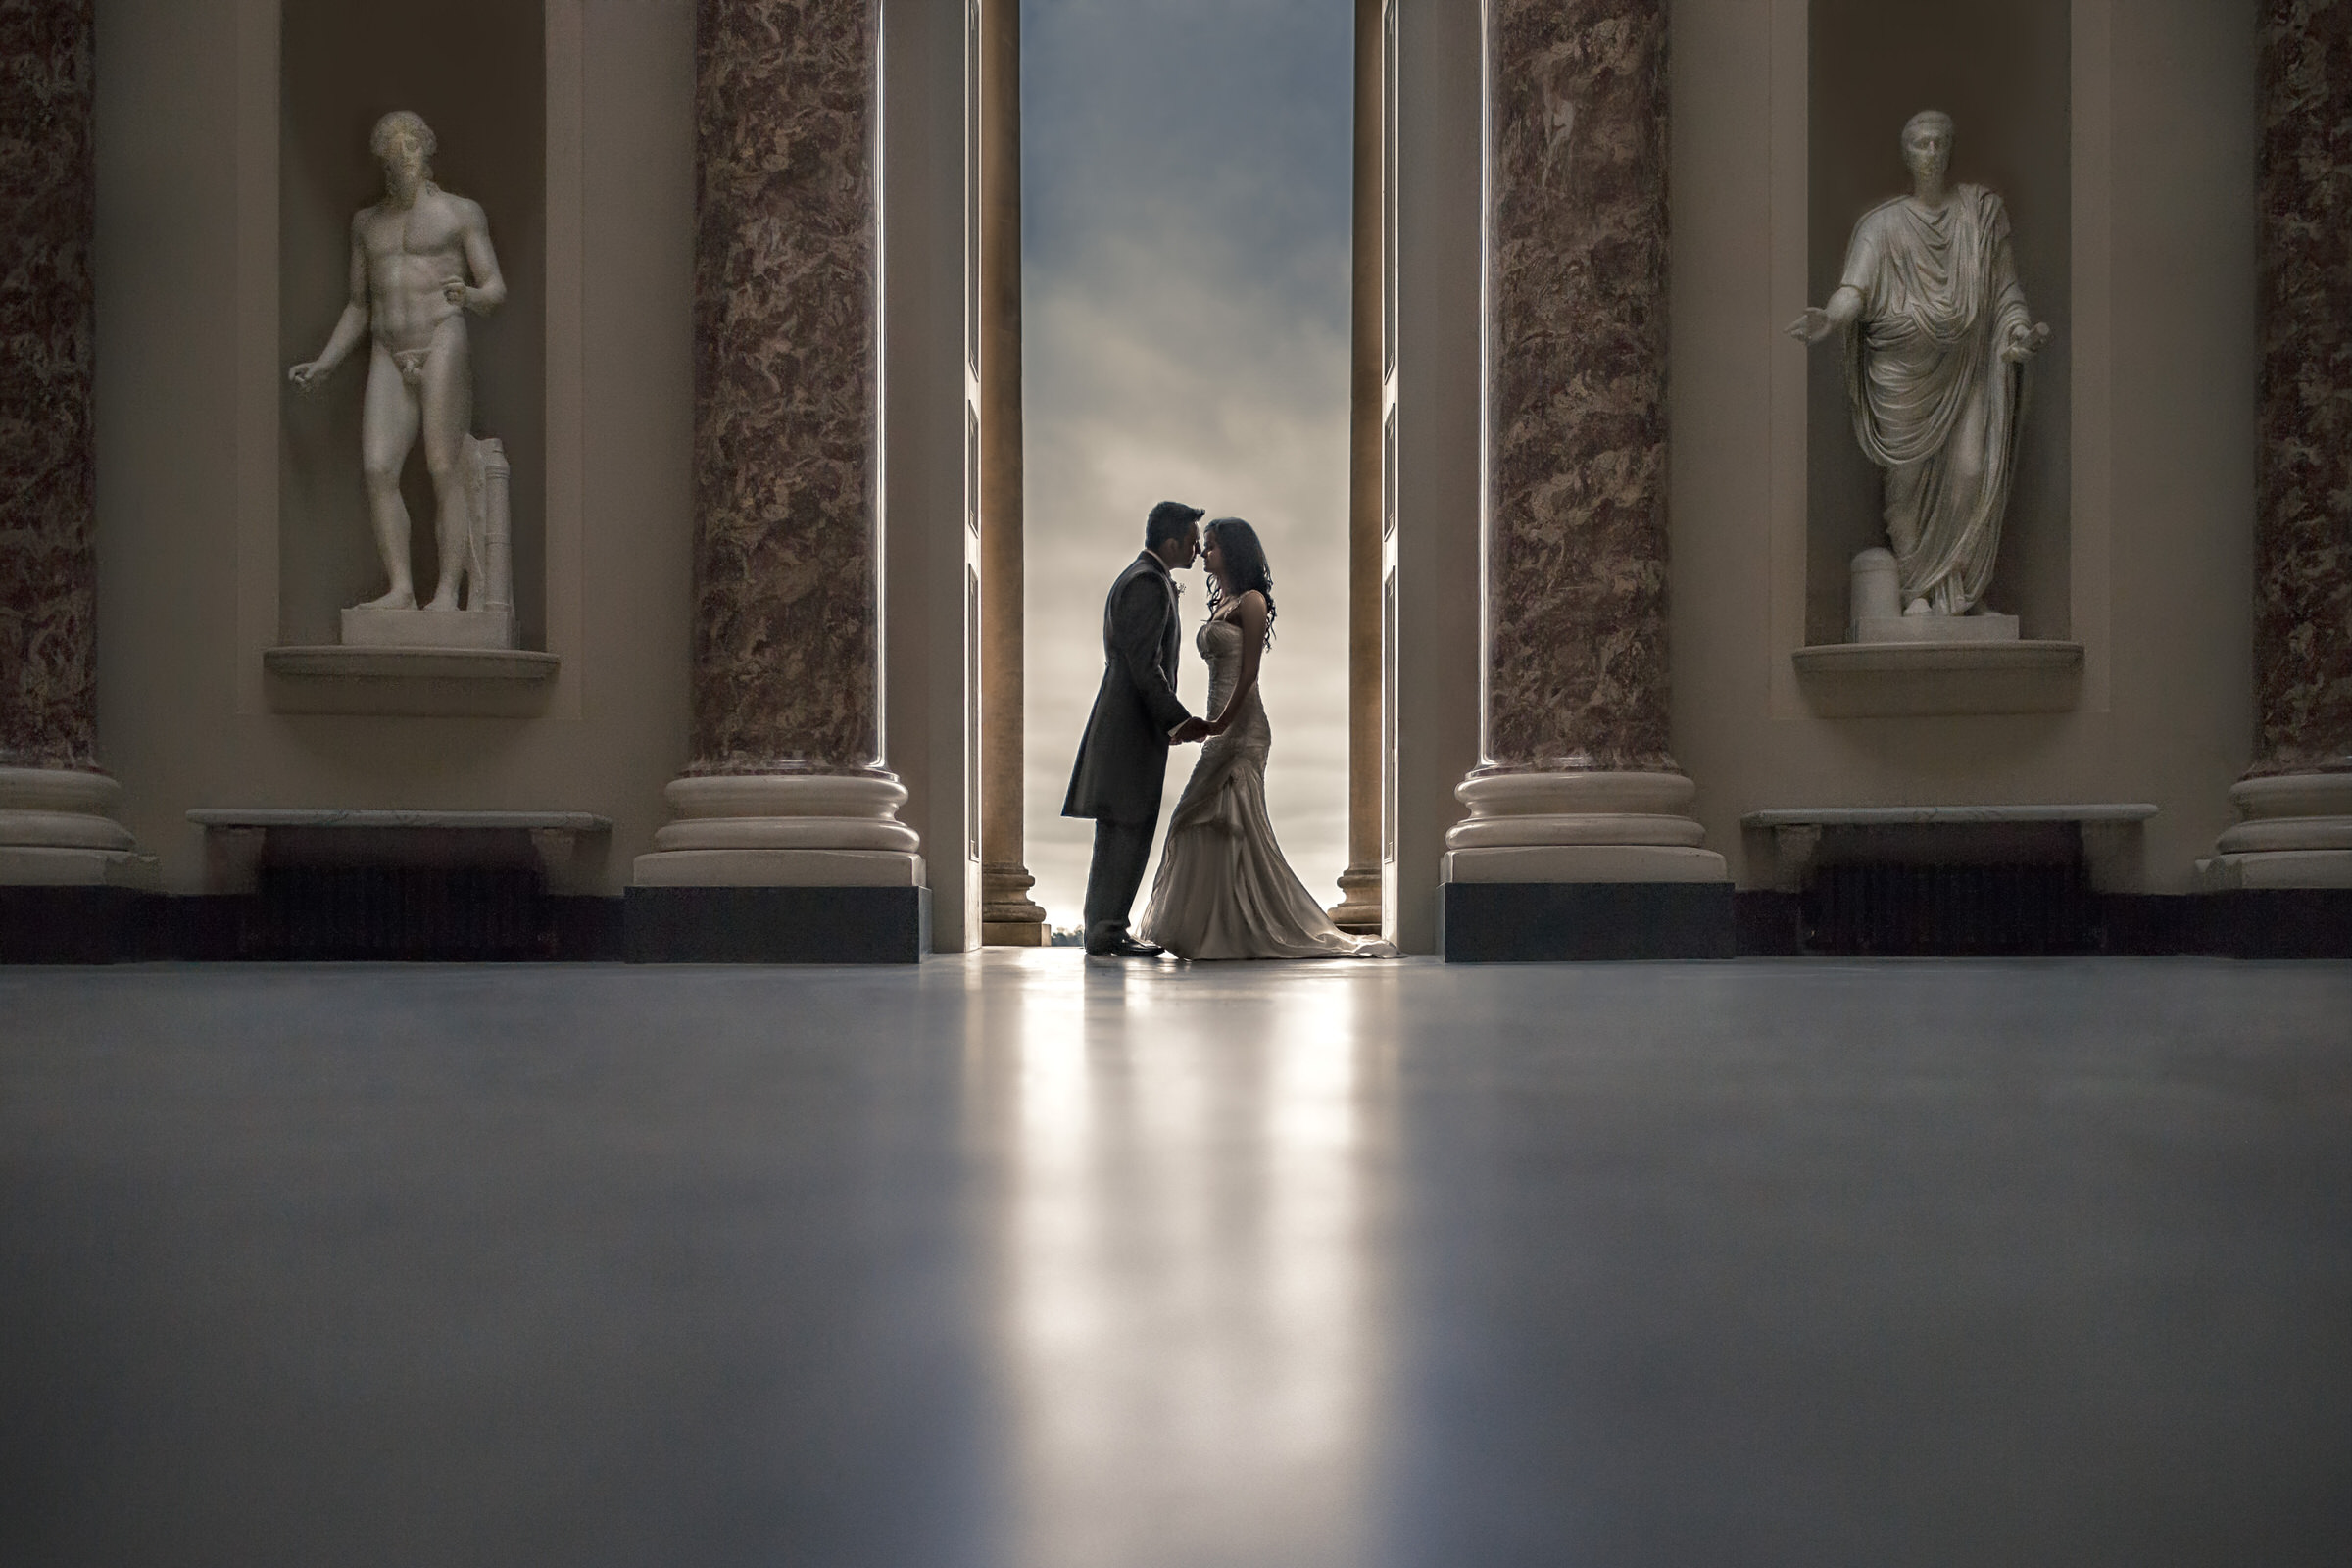 Luxury bride and groom portrait against columns and statuary - photo by Eye Jogia Photography